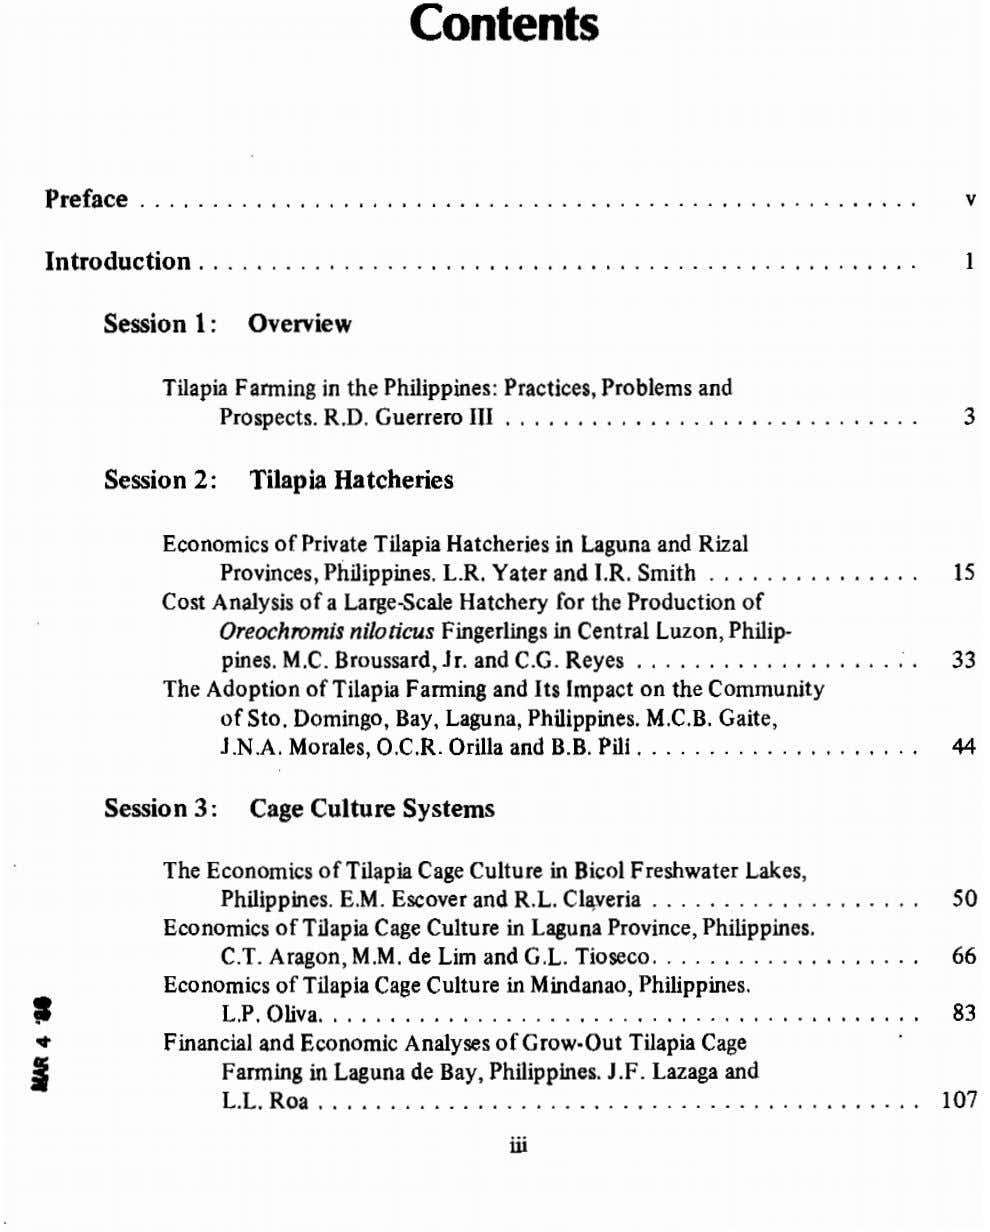 Contents Preface v Introduction 1 Session 1: Overview Tilapia Farming in the Philippines: Practices, Problems